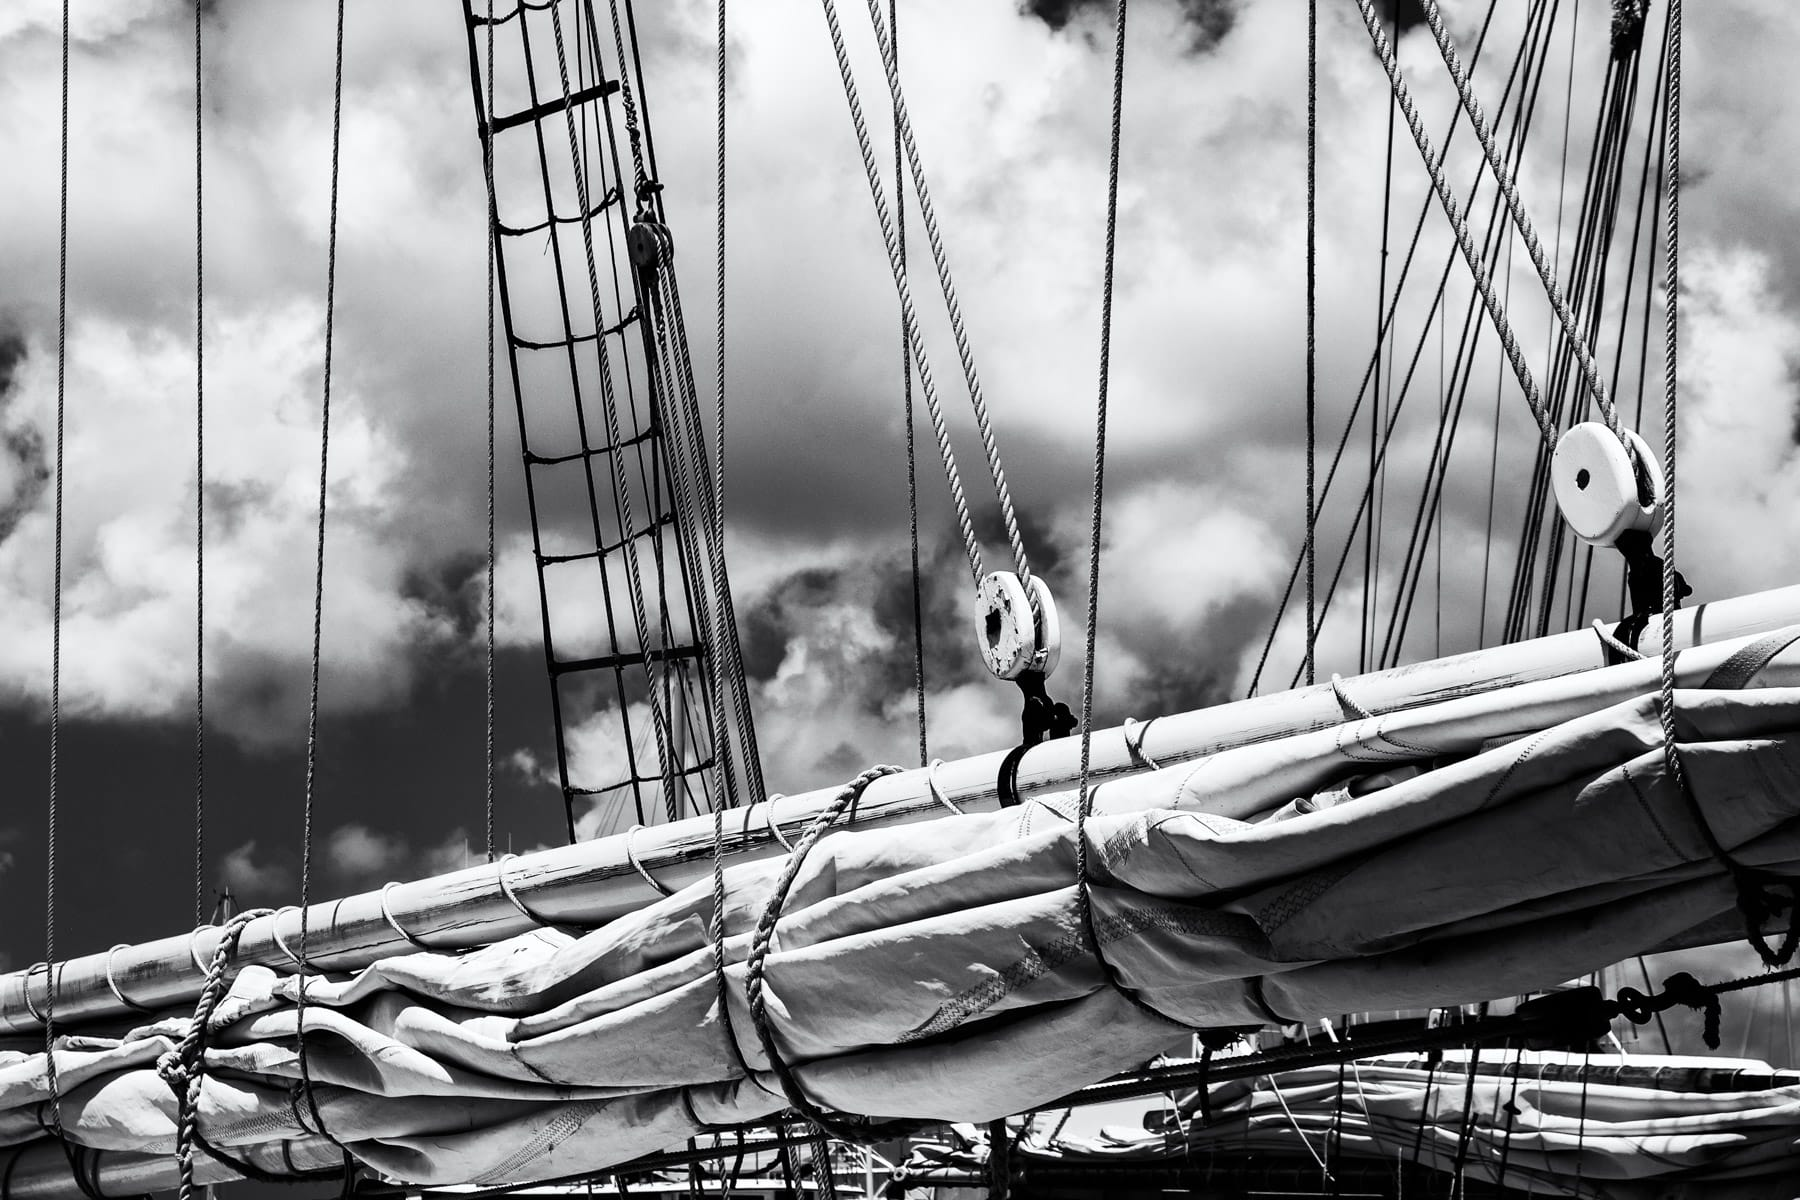 Ropes and sails on a sailboat in Key West, Florida.